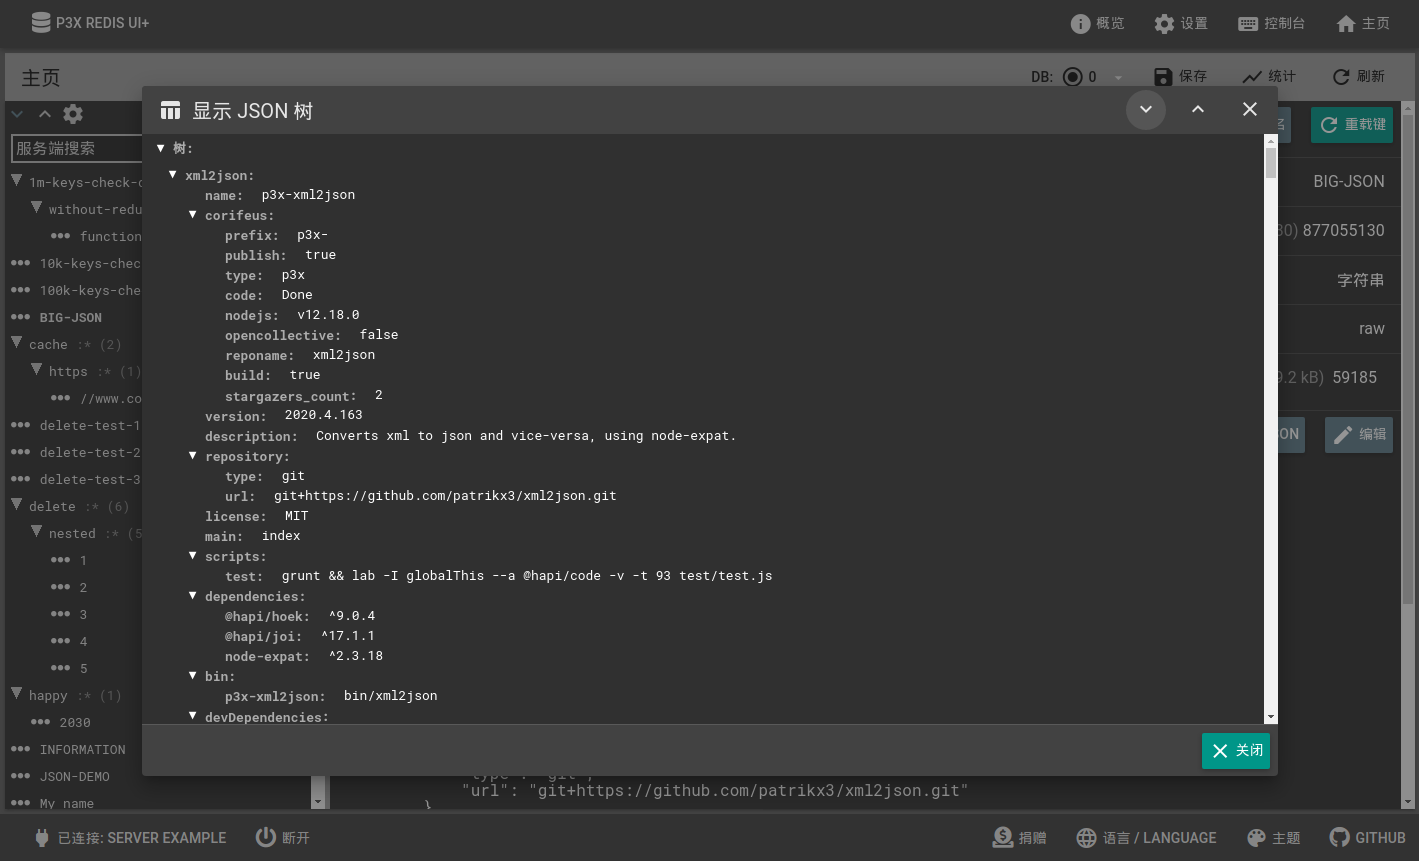 Dark themed - JSON preview